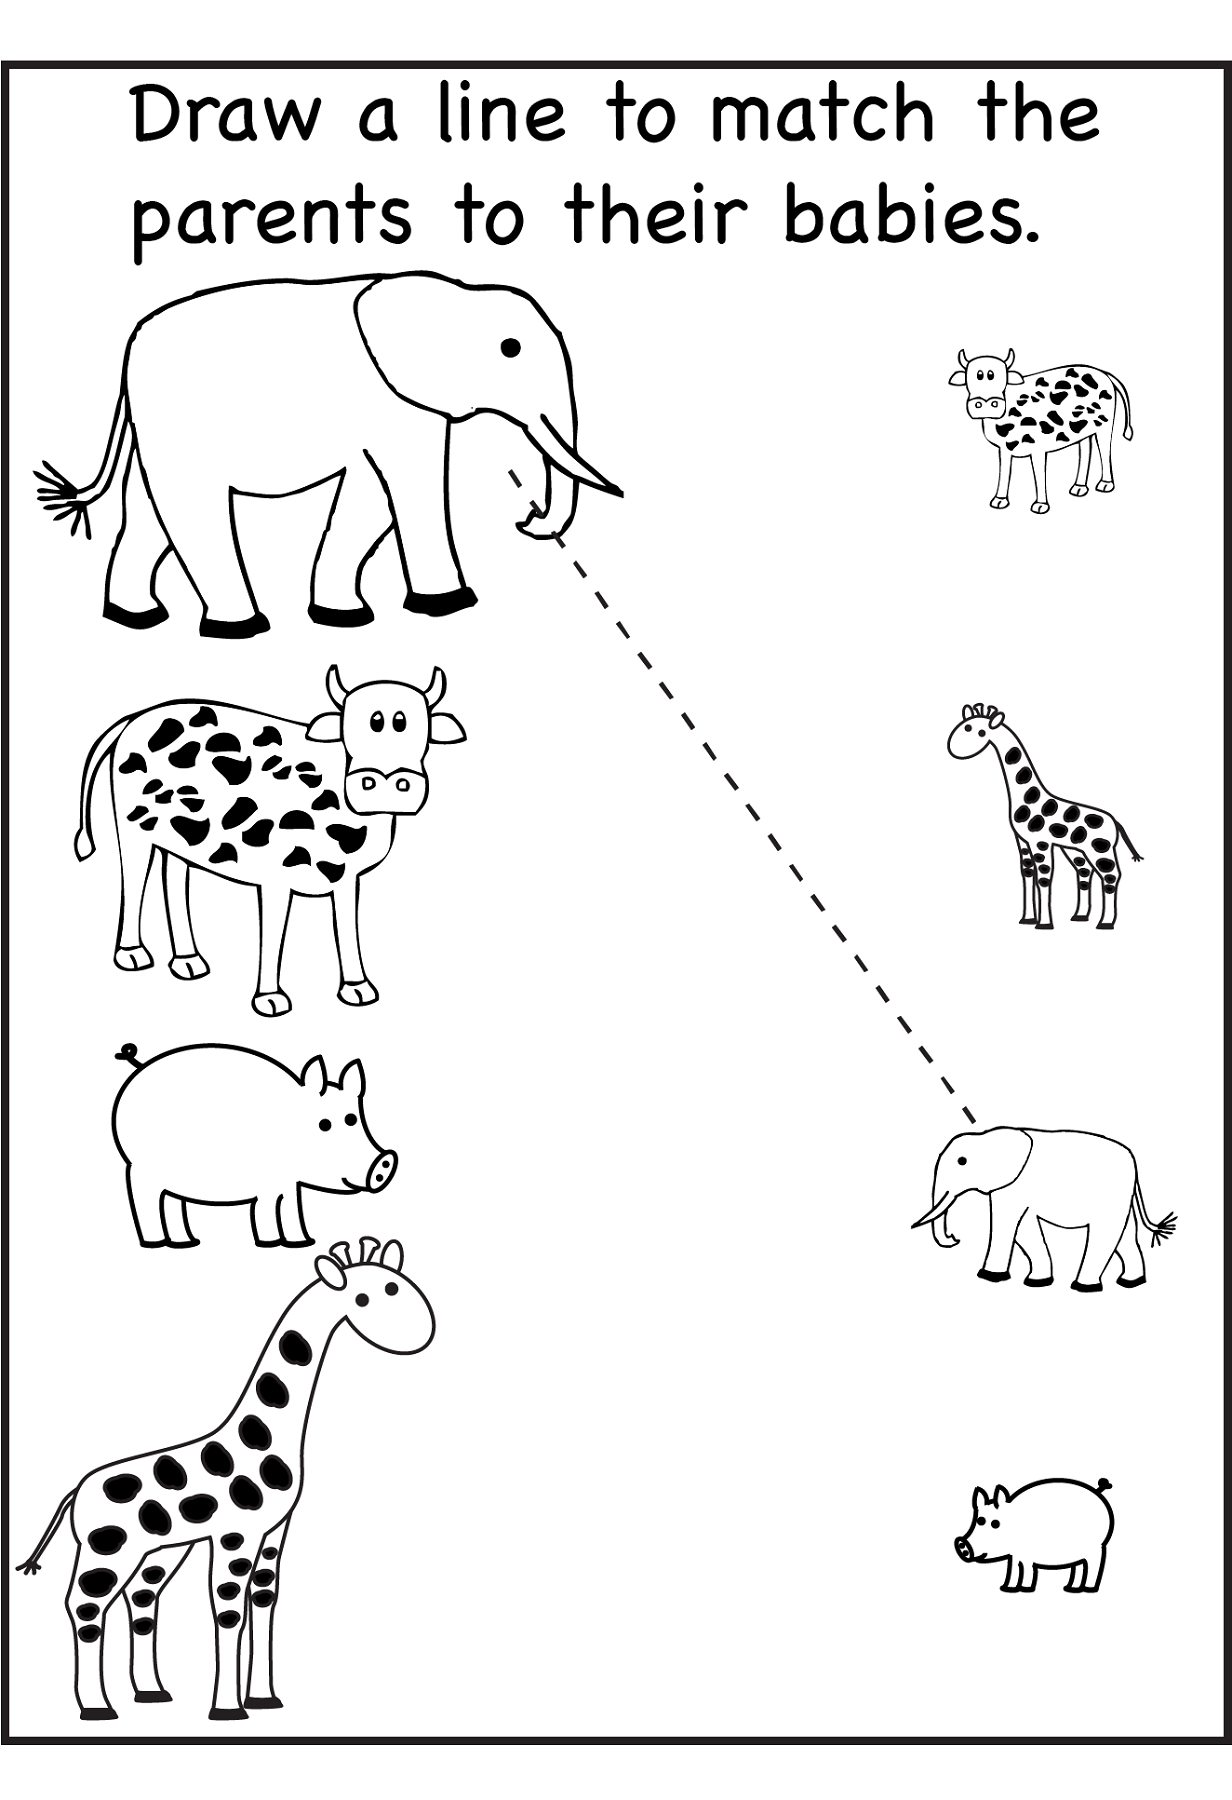 Printable Activity Sheets for Kids | découpage et traçage ...